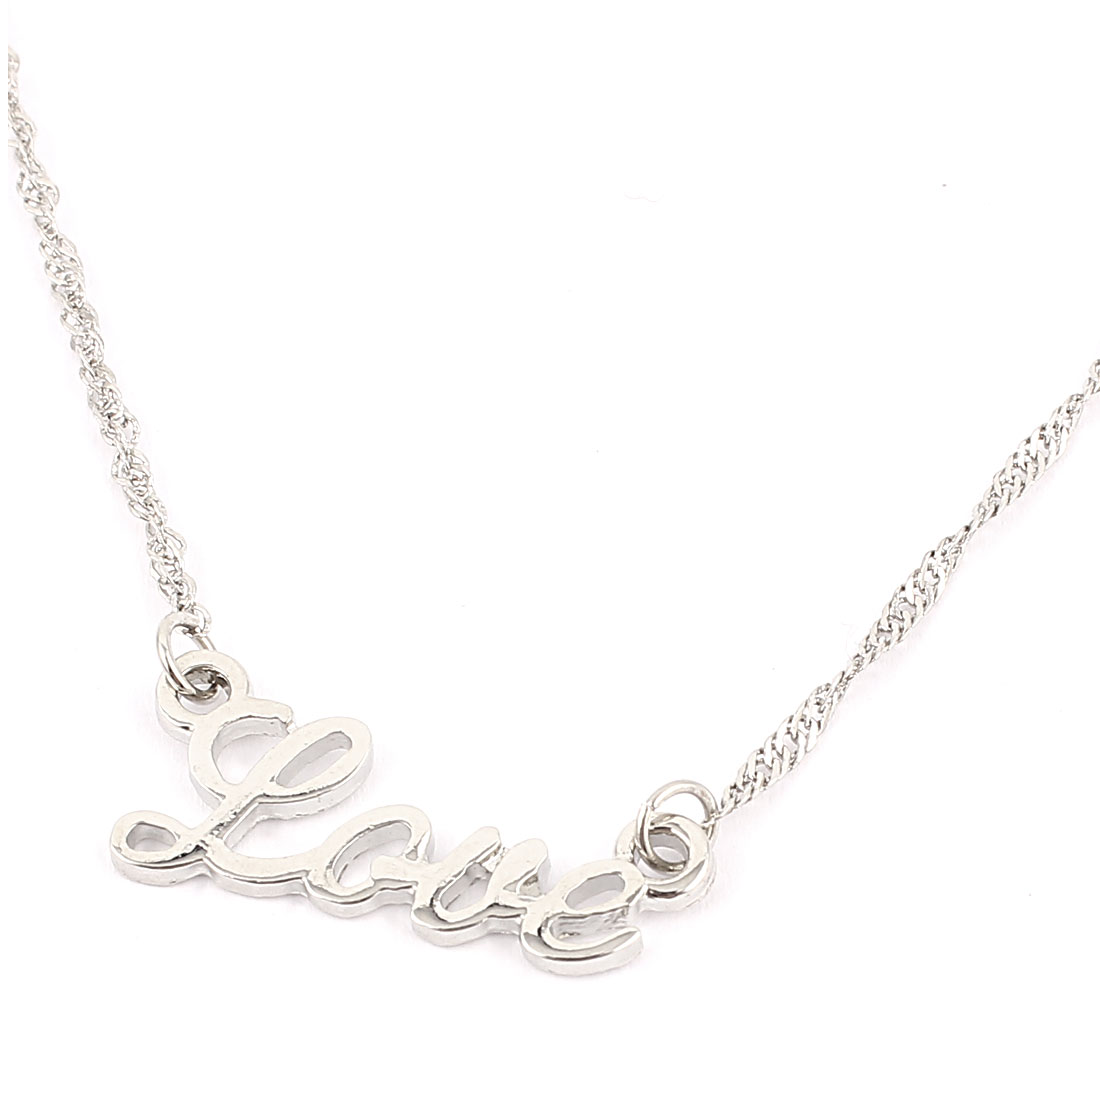 Ladies Women Metal Word LOVE Design Pendant Lobster Buckle Strip Link Slim Chain Necklace Neckwear Collar Silver Tone